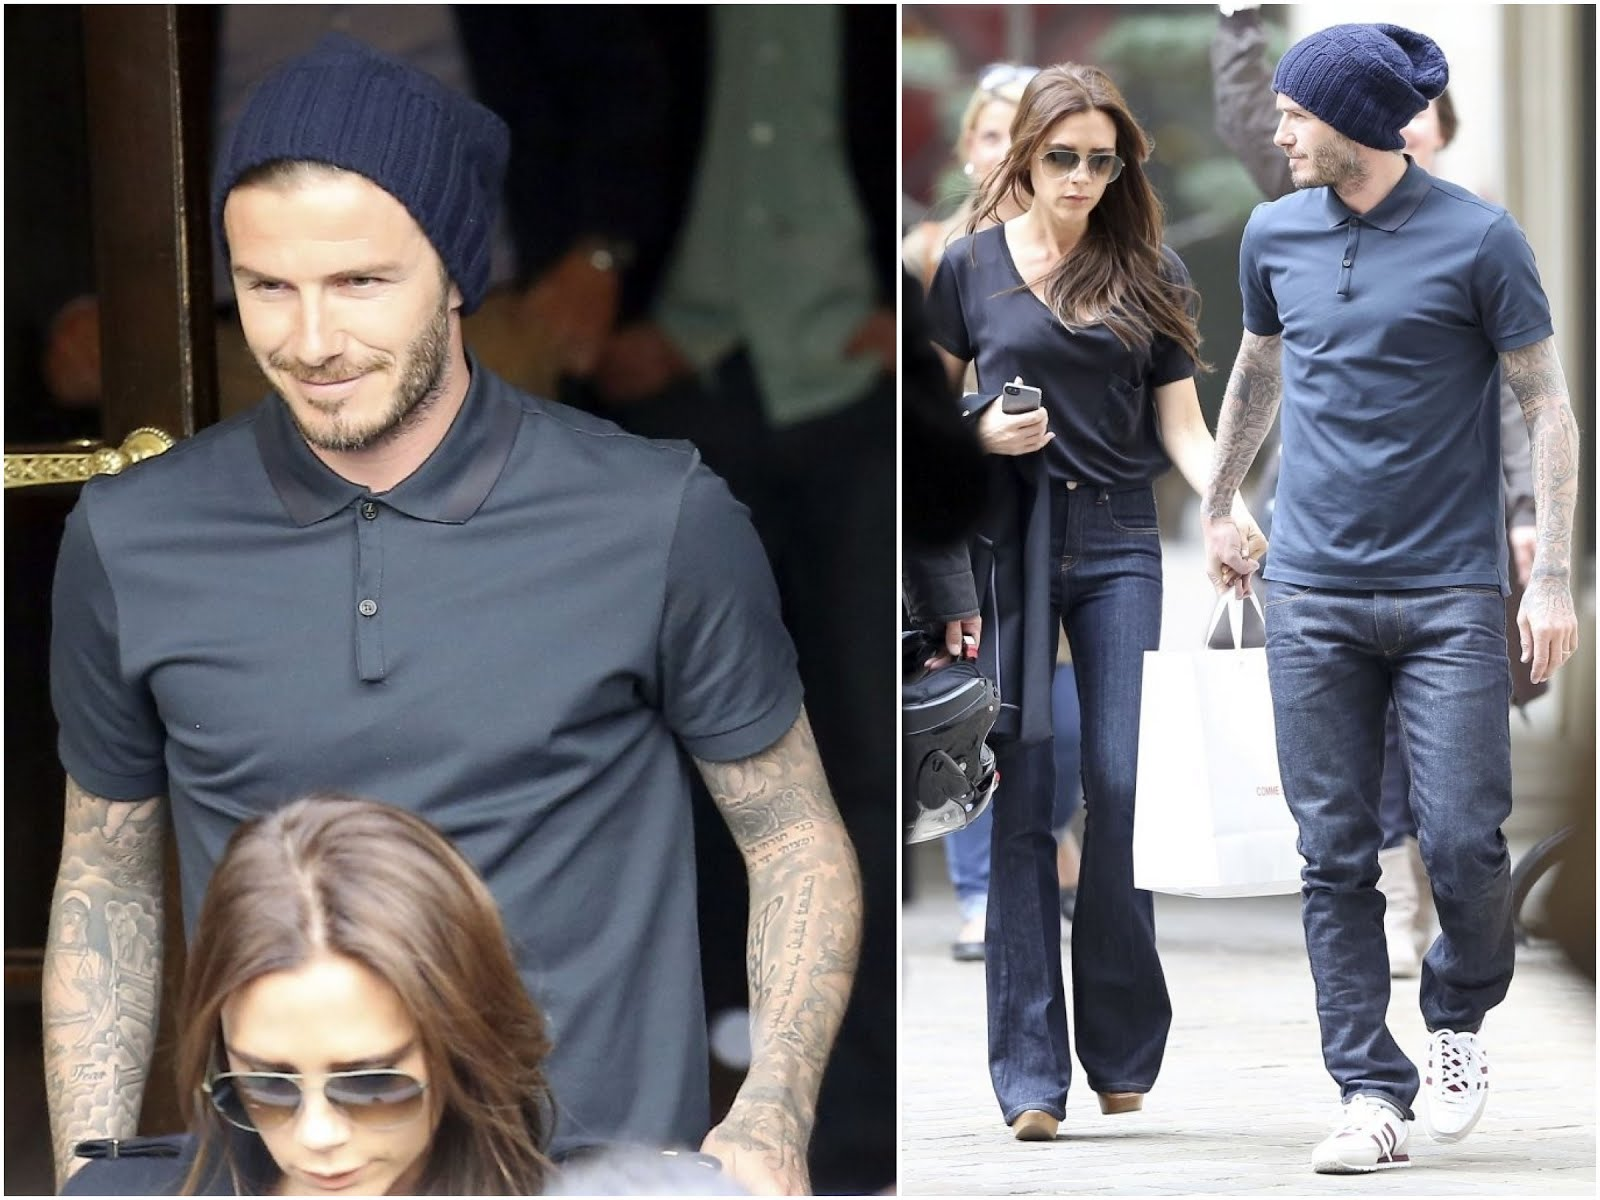 00O00 Menswear Blog: David Beckham in Lanvin grosgrain collar polo t-shirt, Paris Street Style May 2013